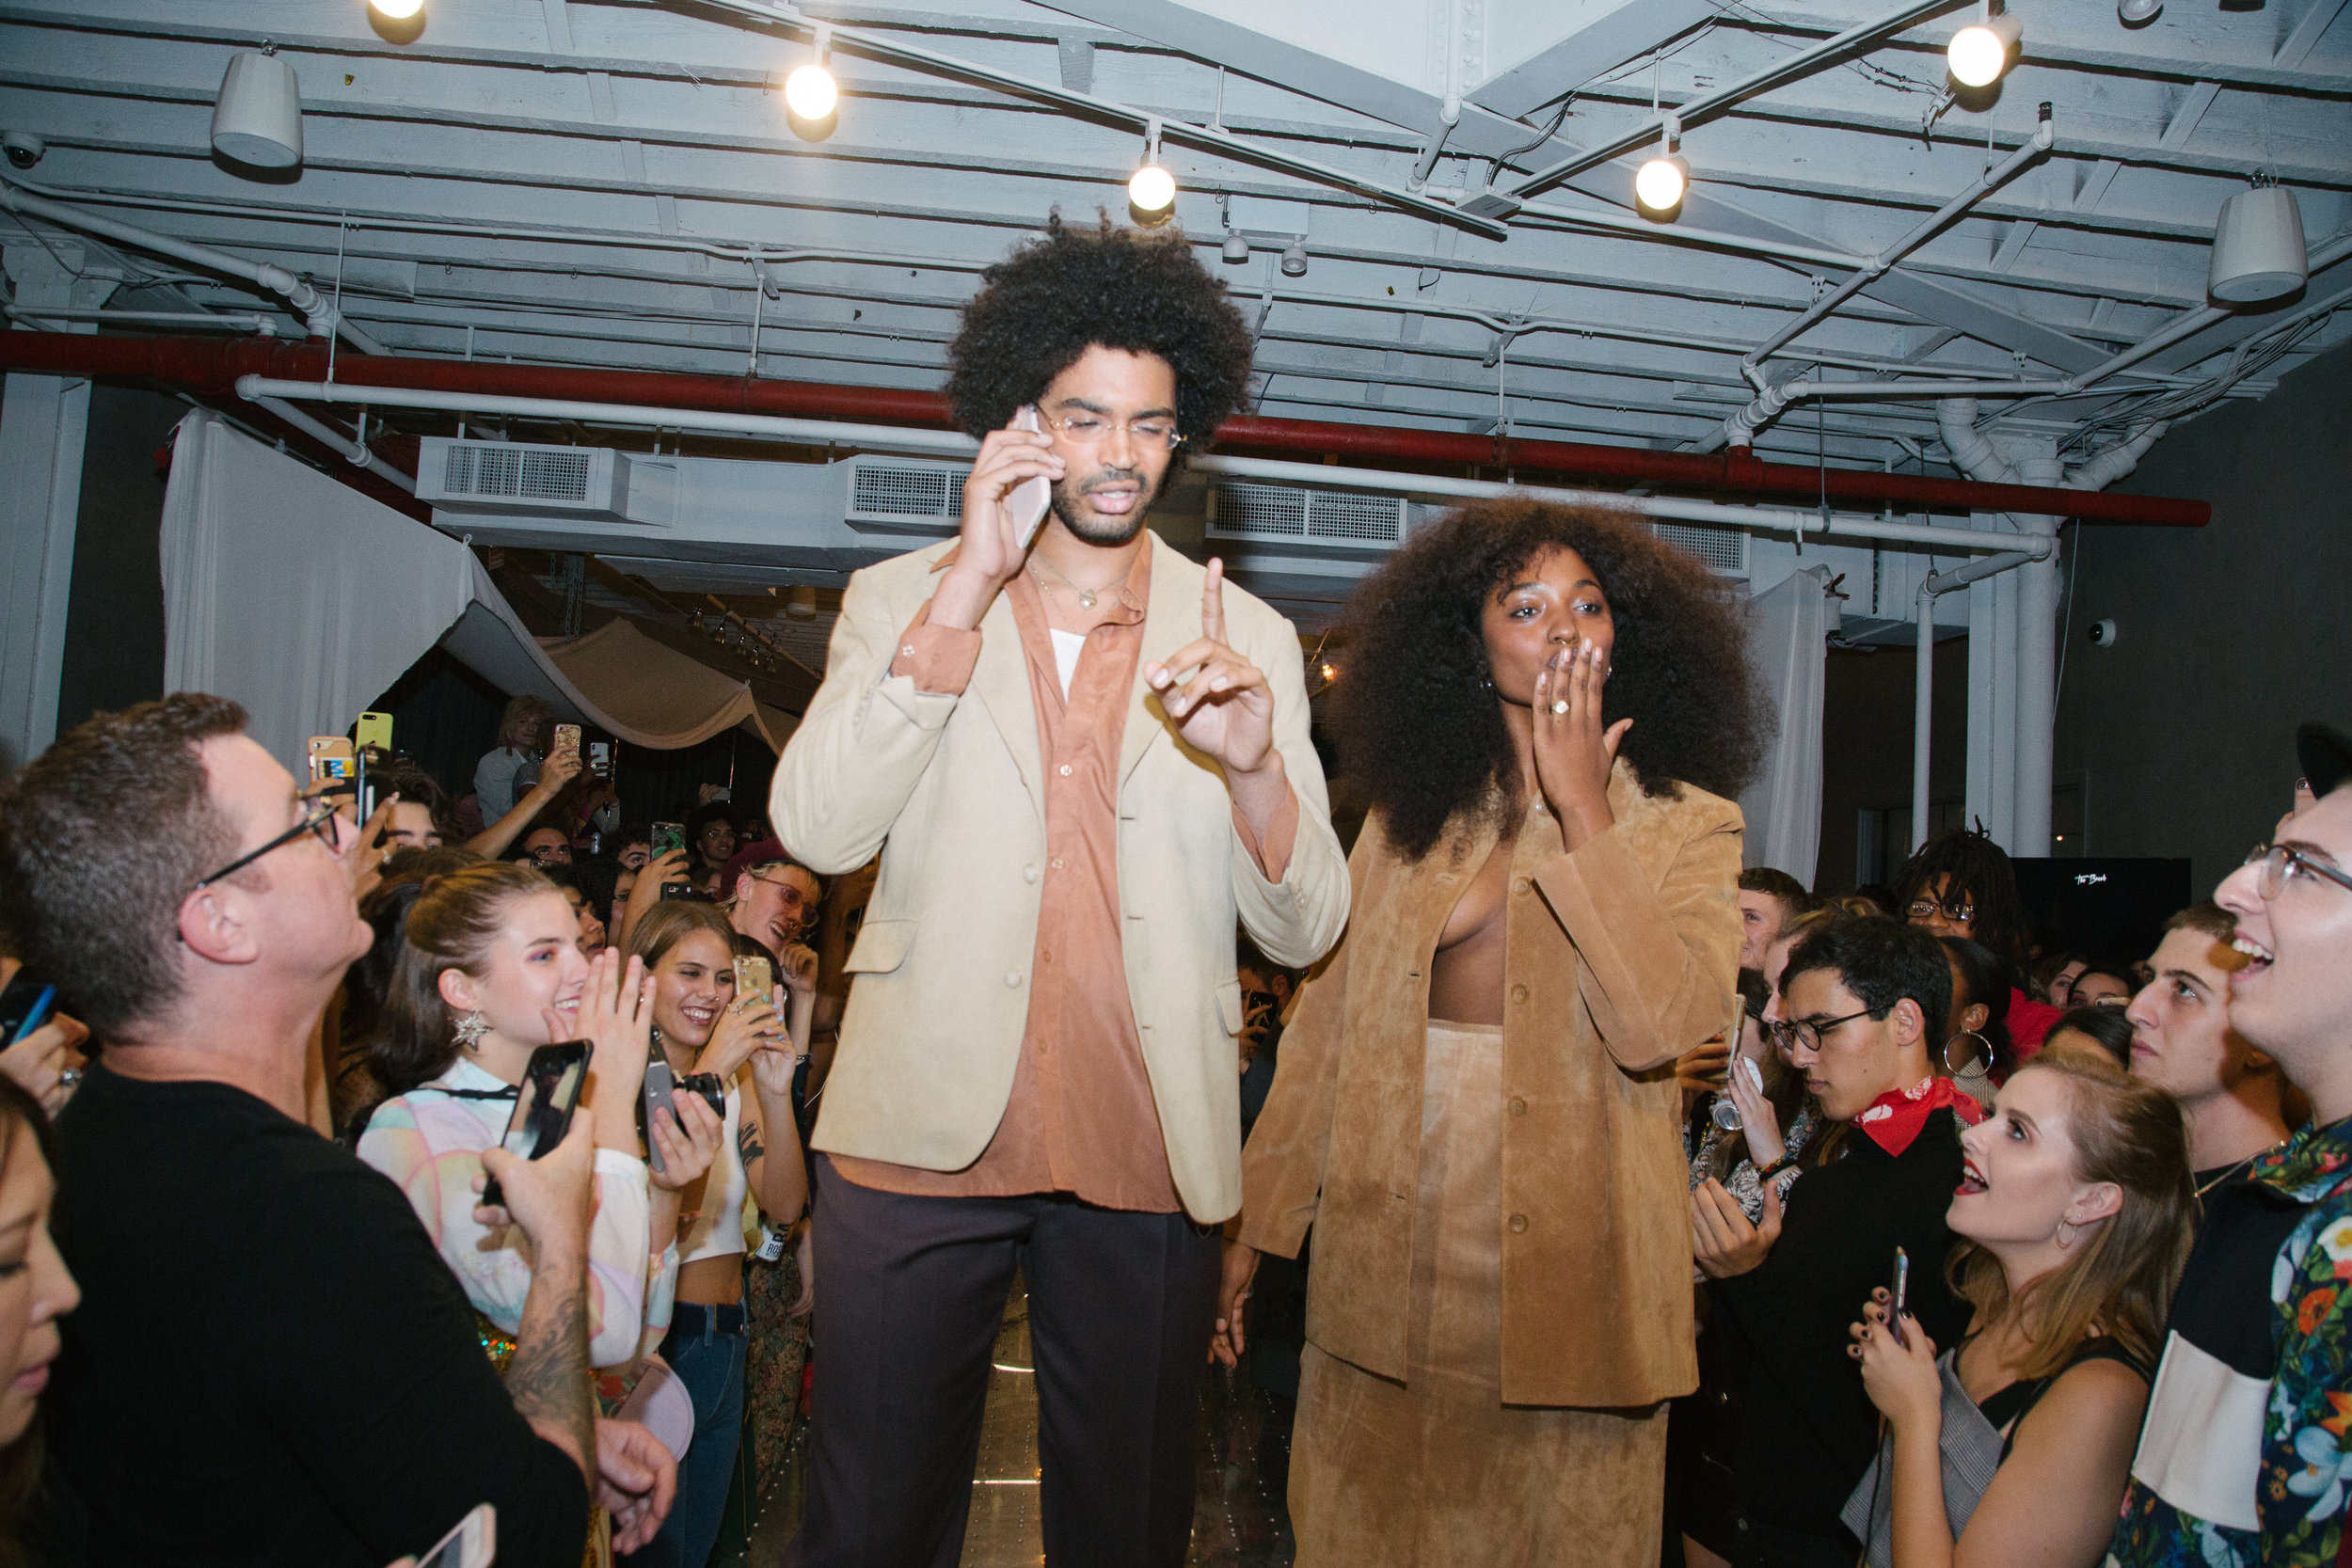 Michael and Gabrielle on the runway shot by BFA photographer Mina Magna.